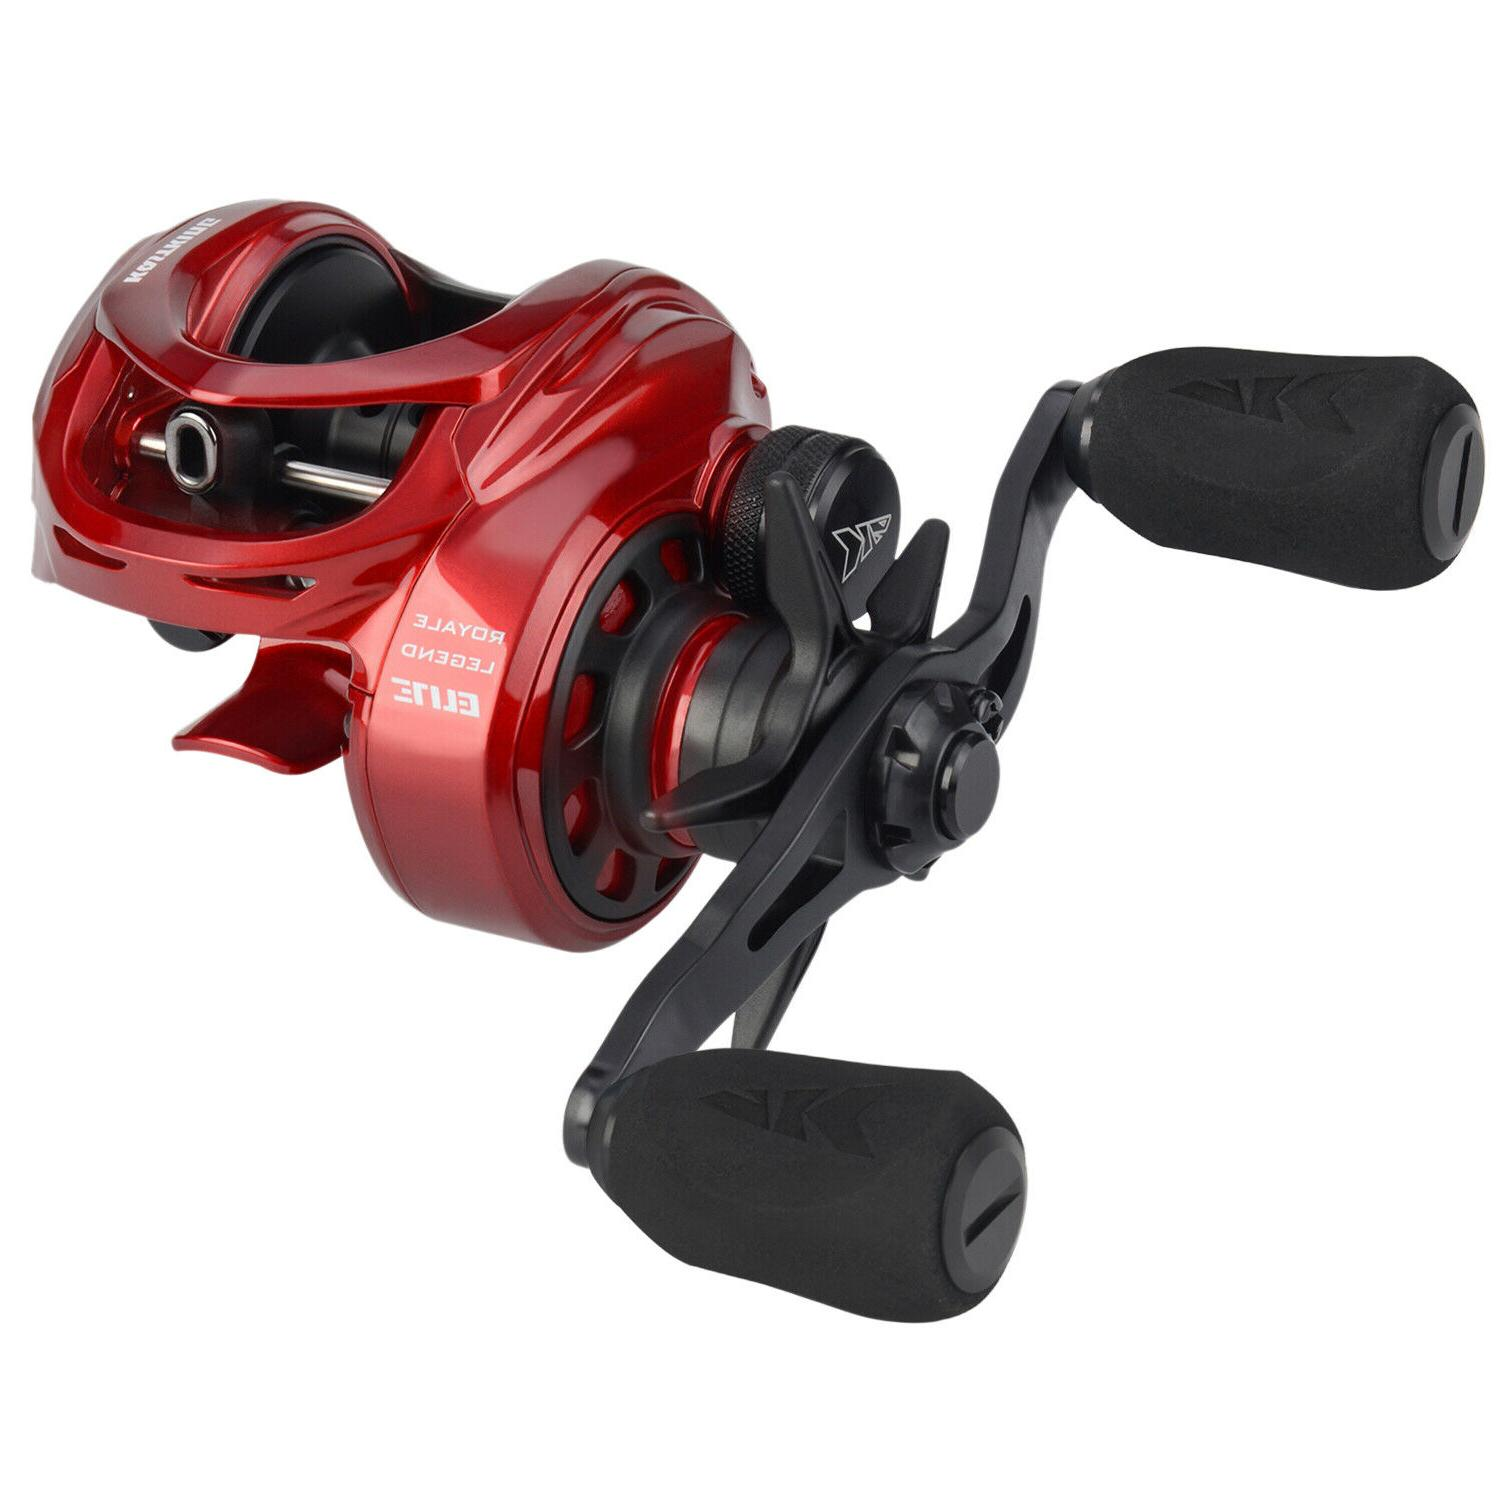 royale legend elite baitcasting reel 4 different